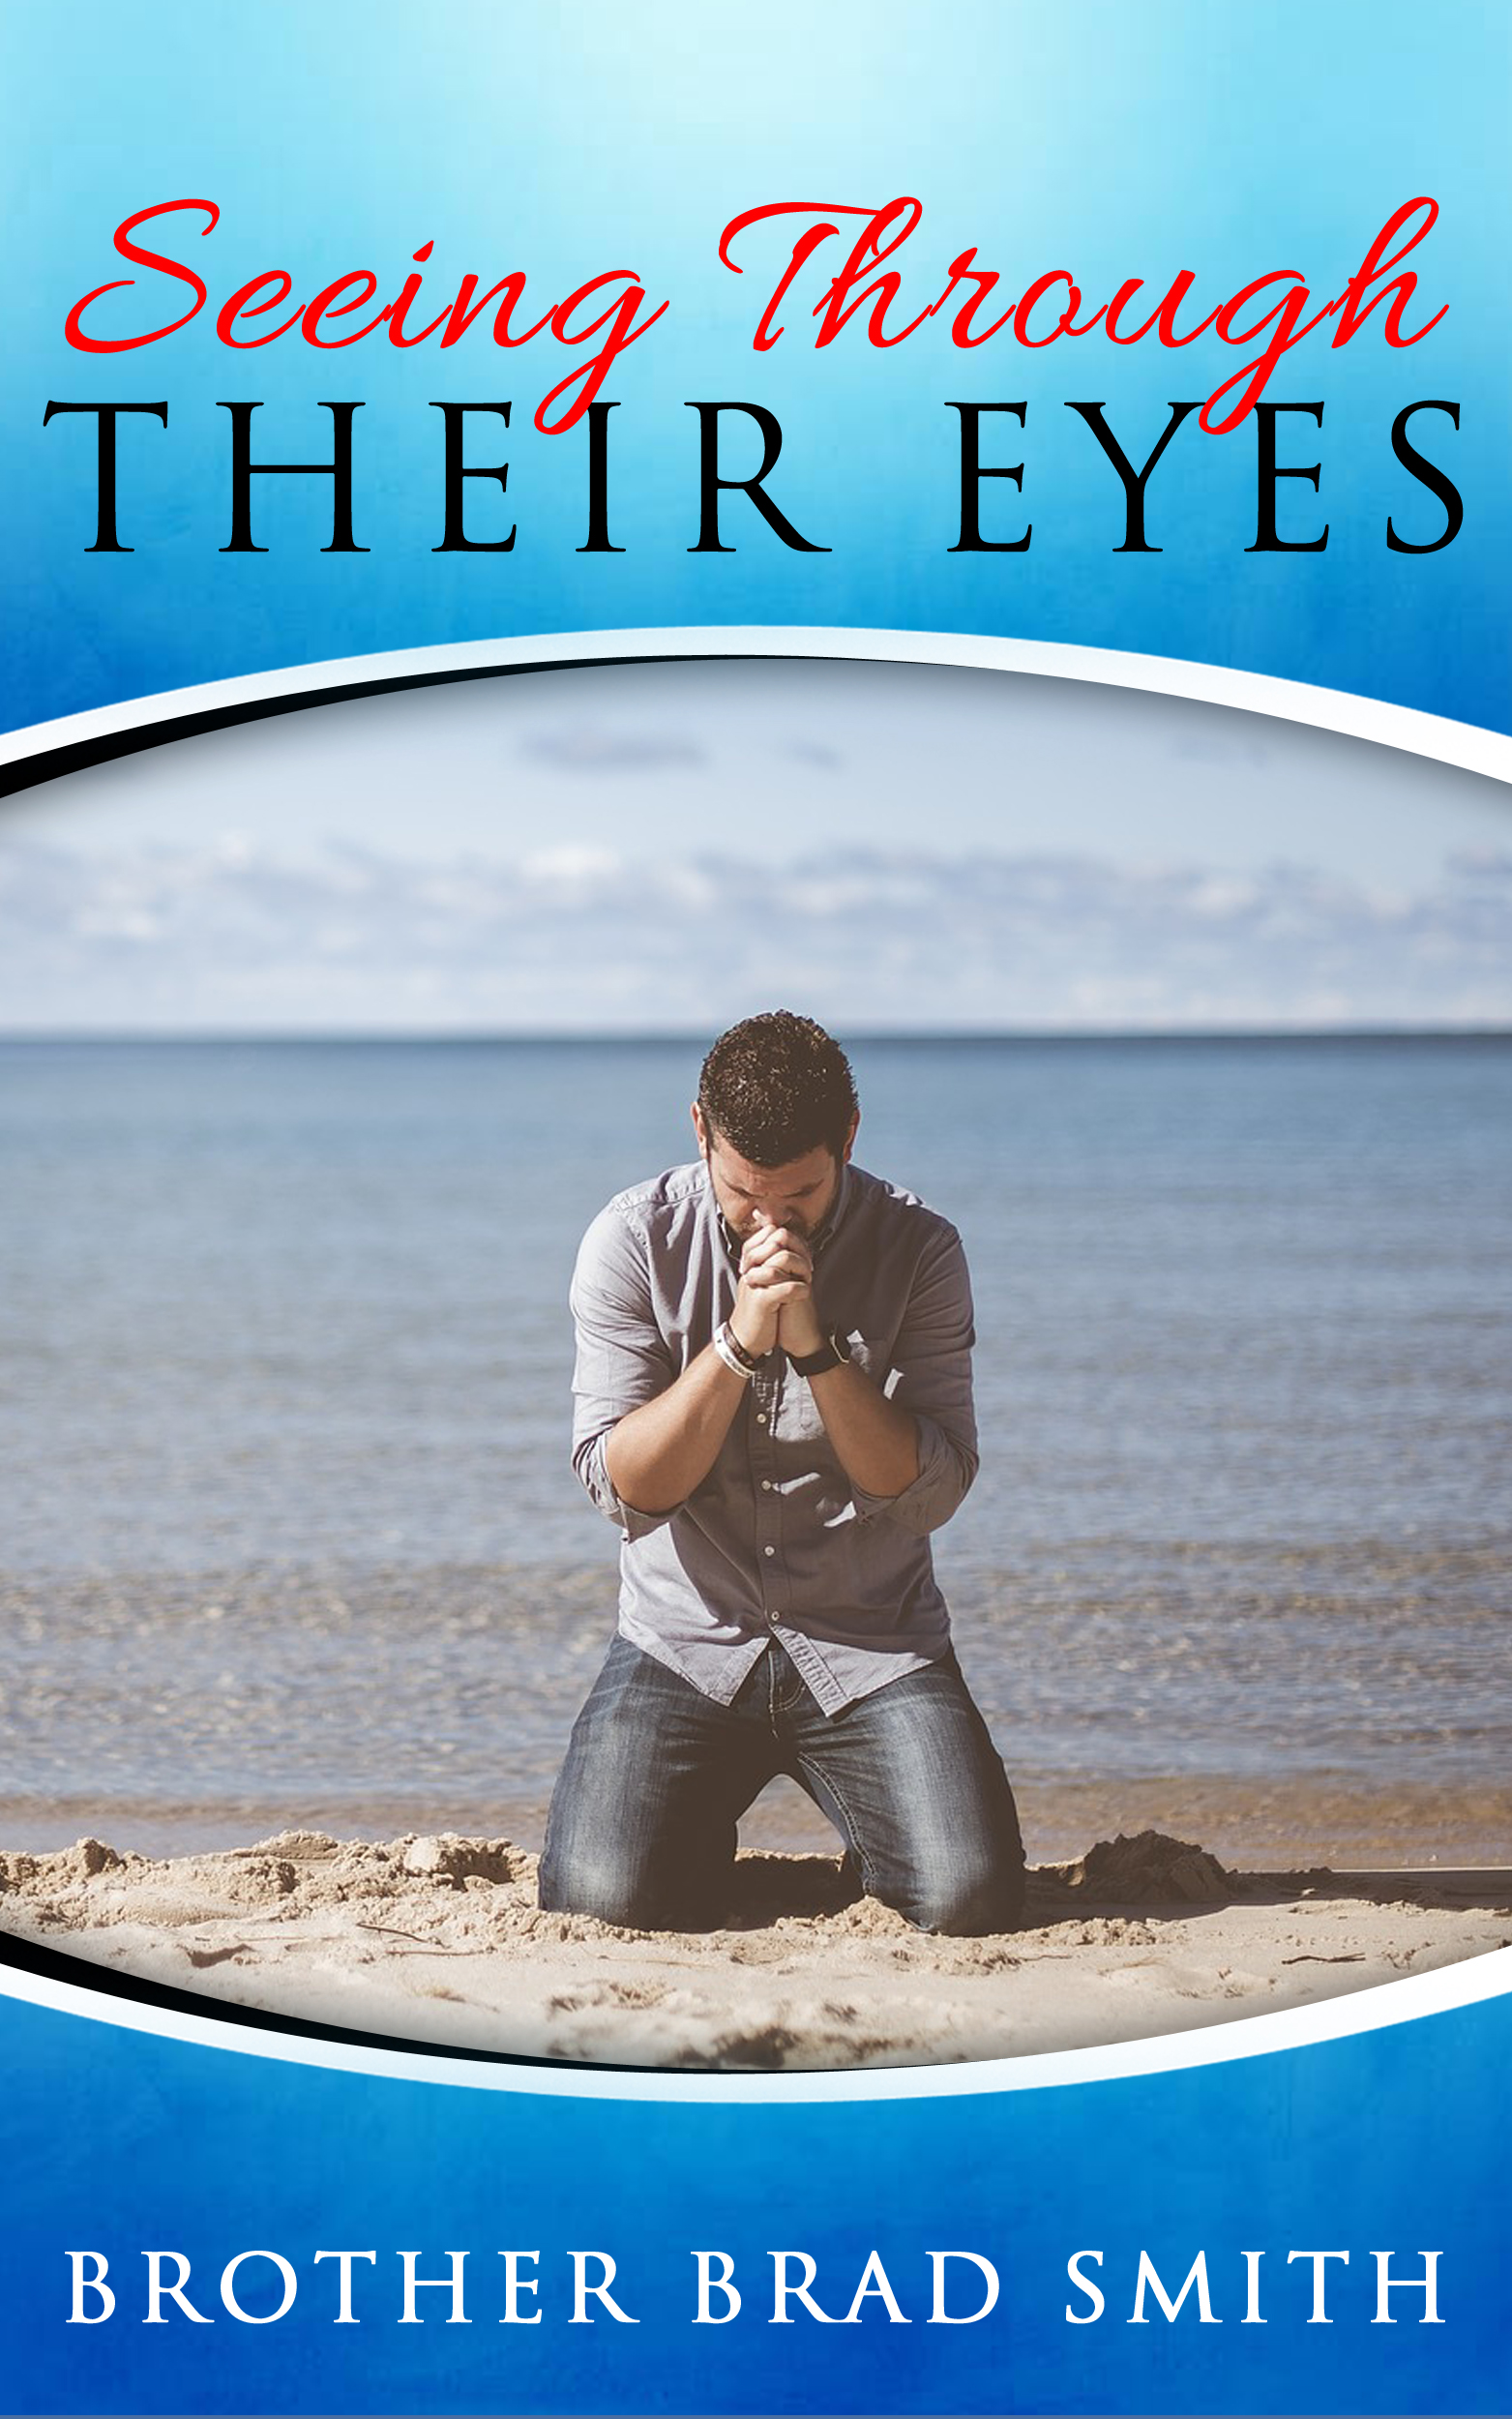 Seeing through their eyes, Brother Brad Smith